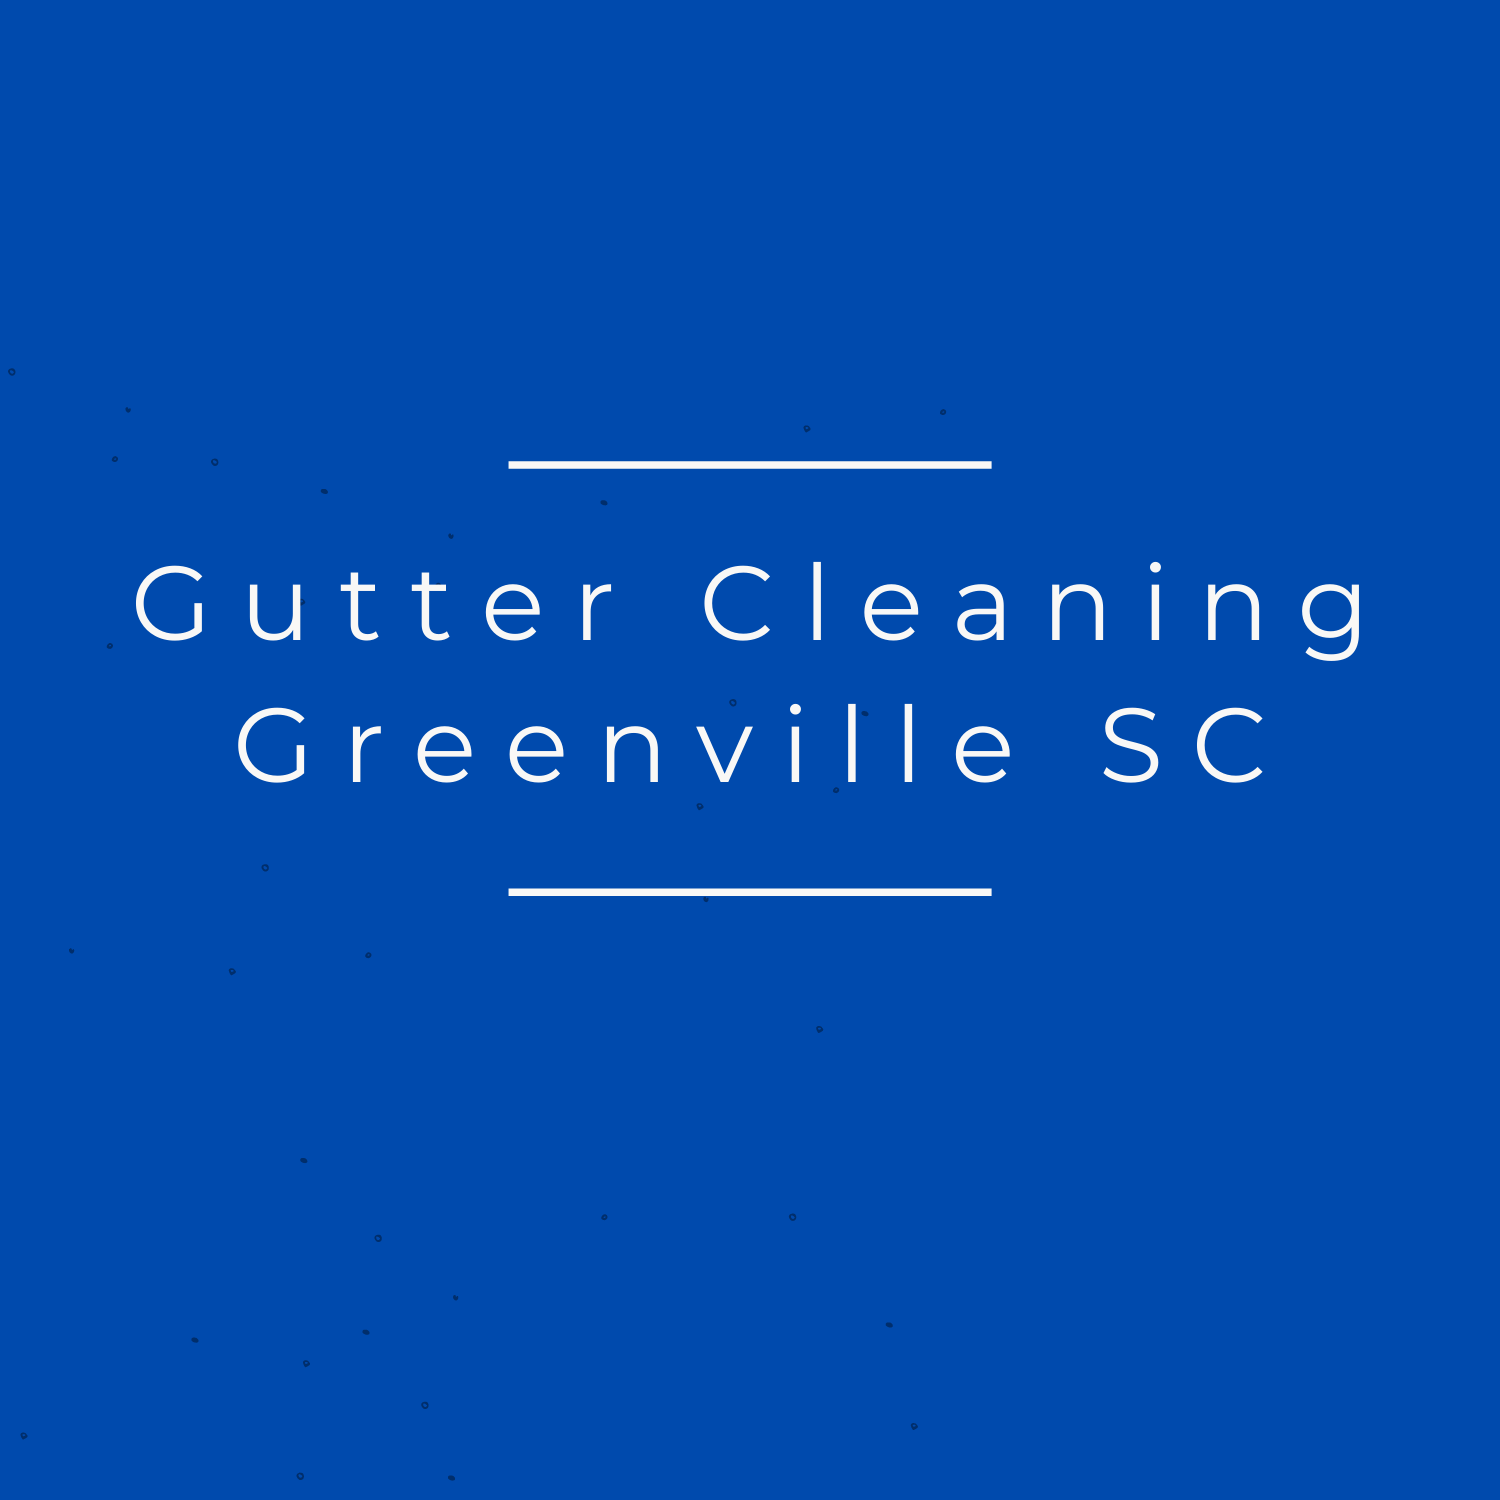 Gutter Cleaning Greenville SC